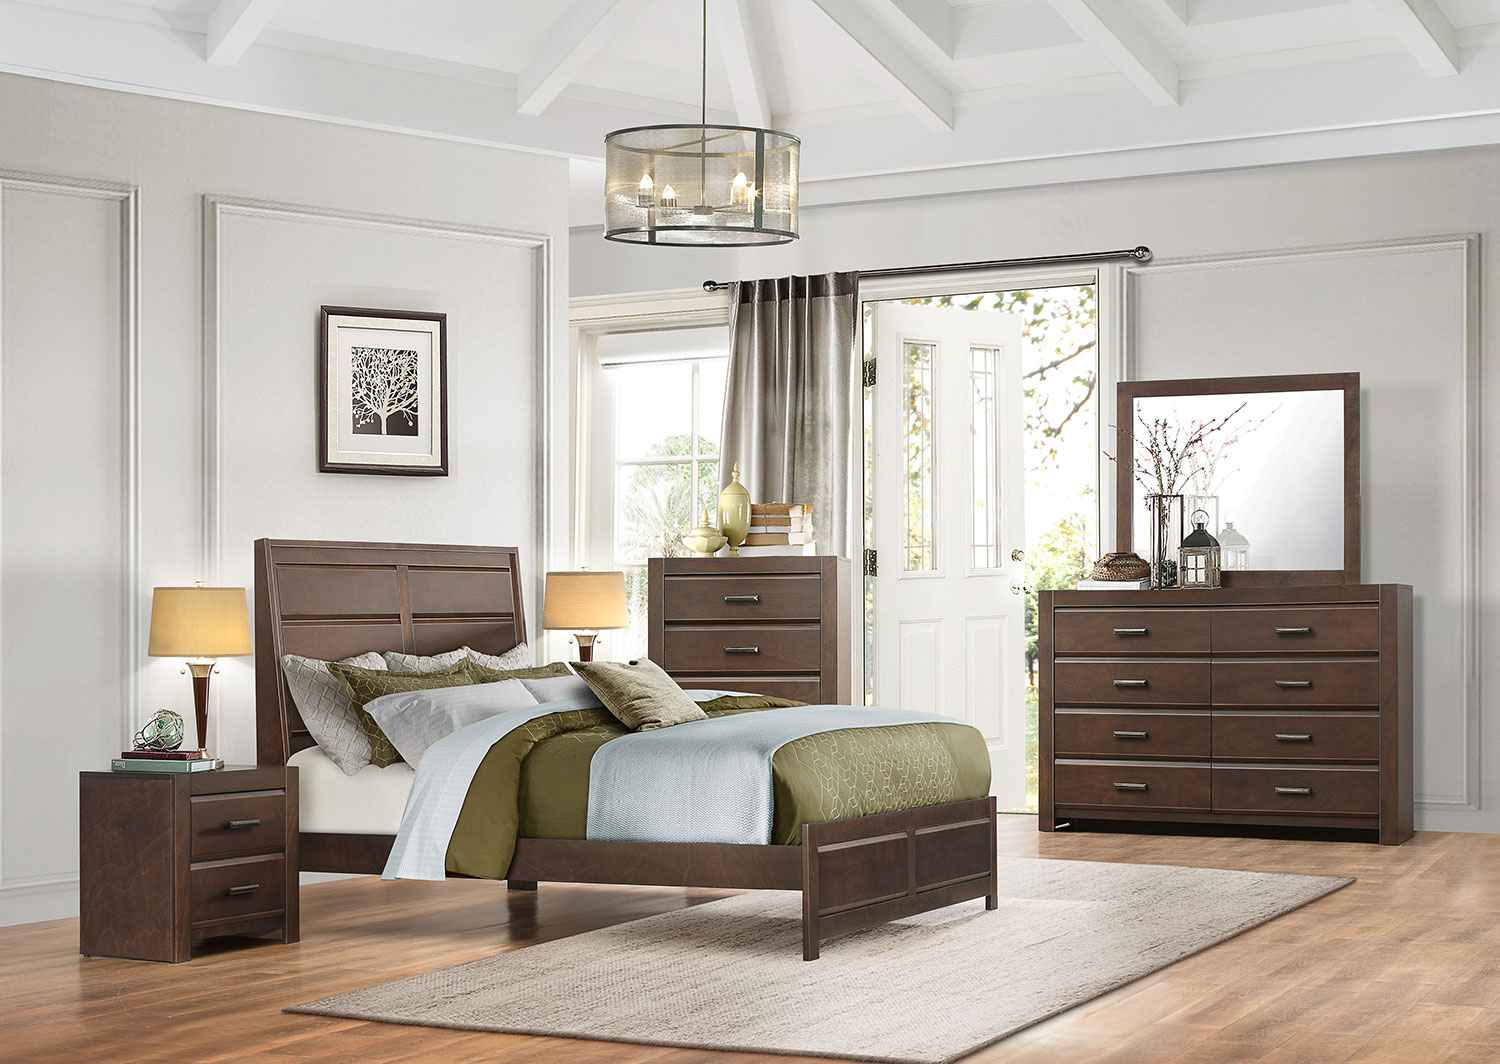 Bedroom Sets Espresso homelegance erwan low profile bedroom set - espresso 1961-bedroom